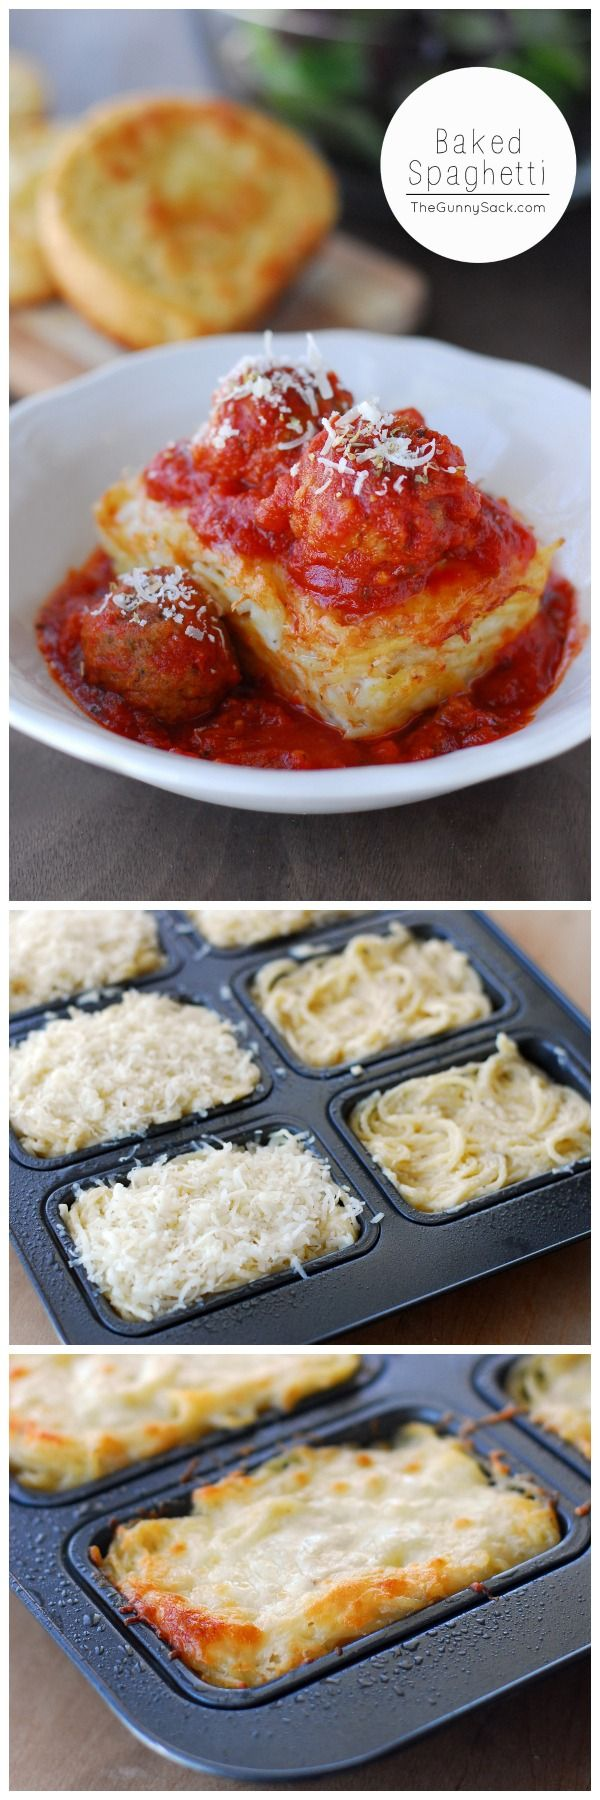 Baked Spaghetti recipe for mini loaves of creamy Alfredo baked spaghetti topped with meatballs and marinara sauce. Courtesy of @thegunnysack